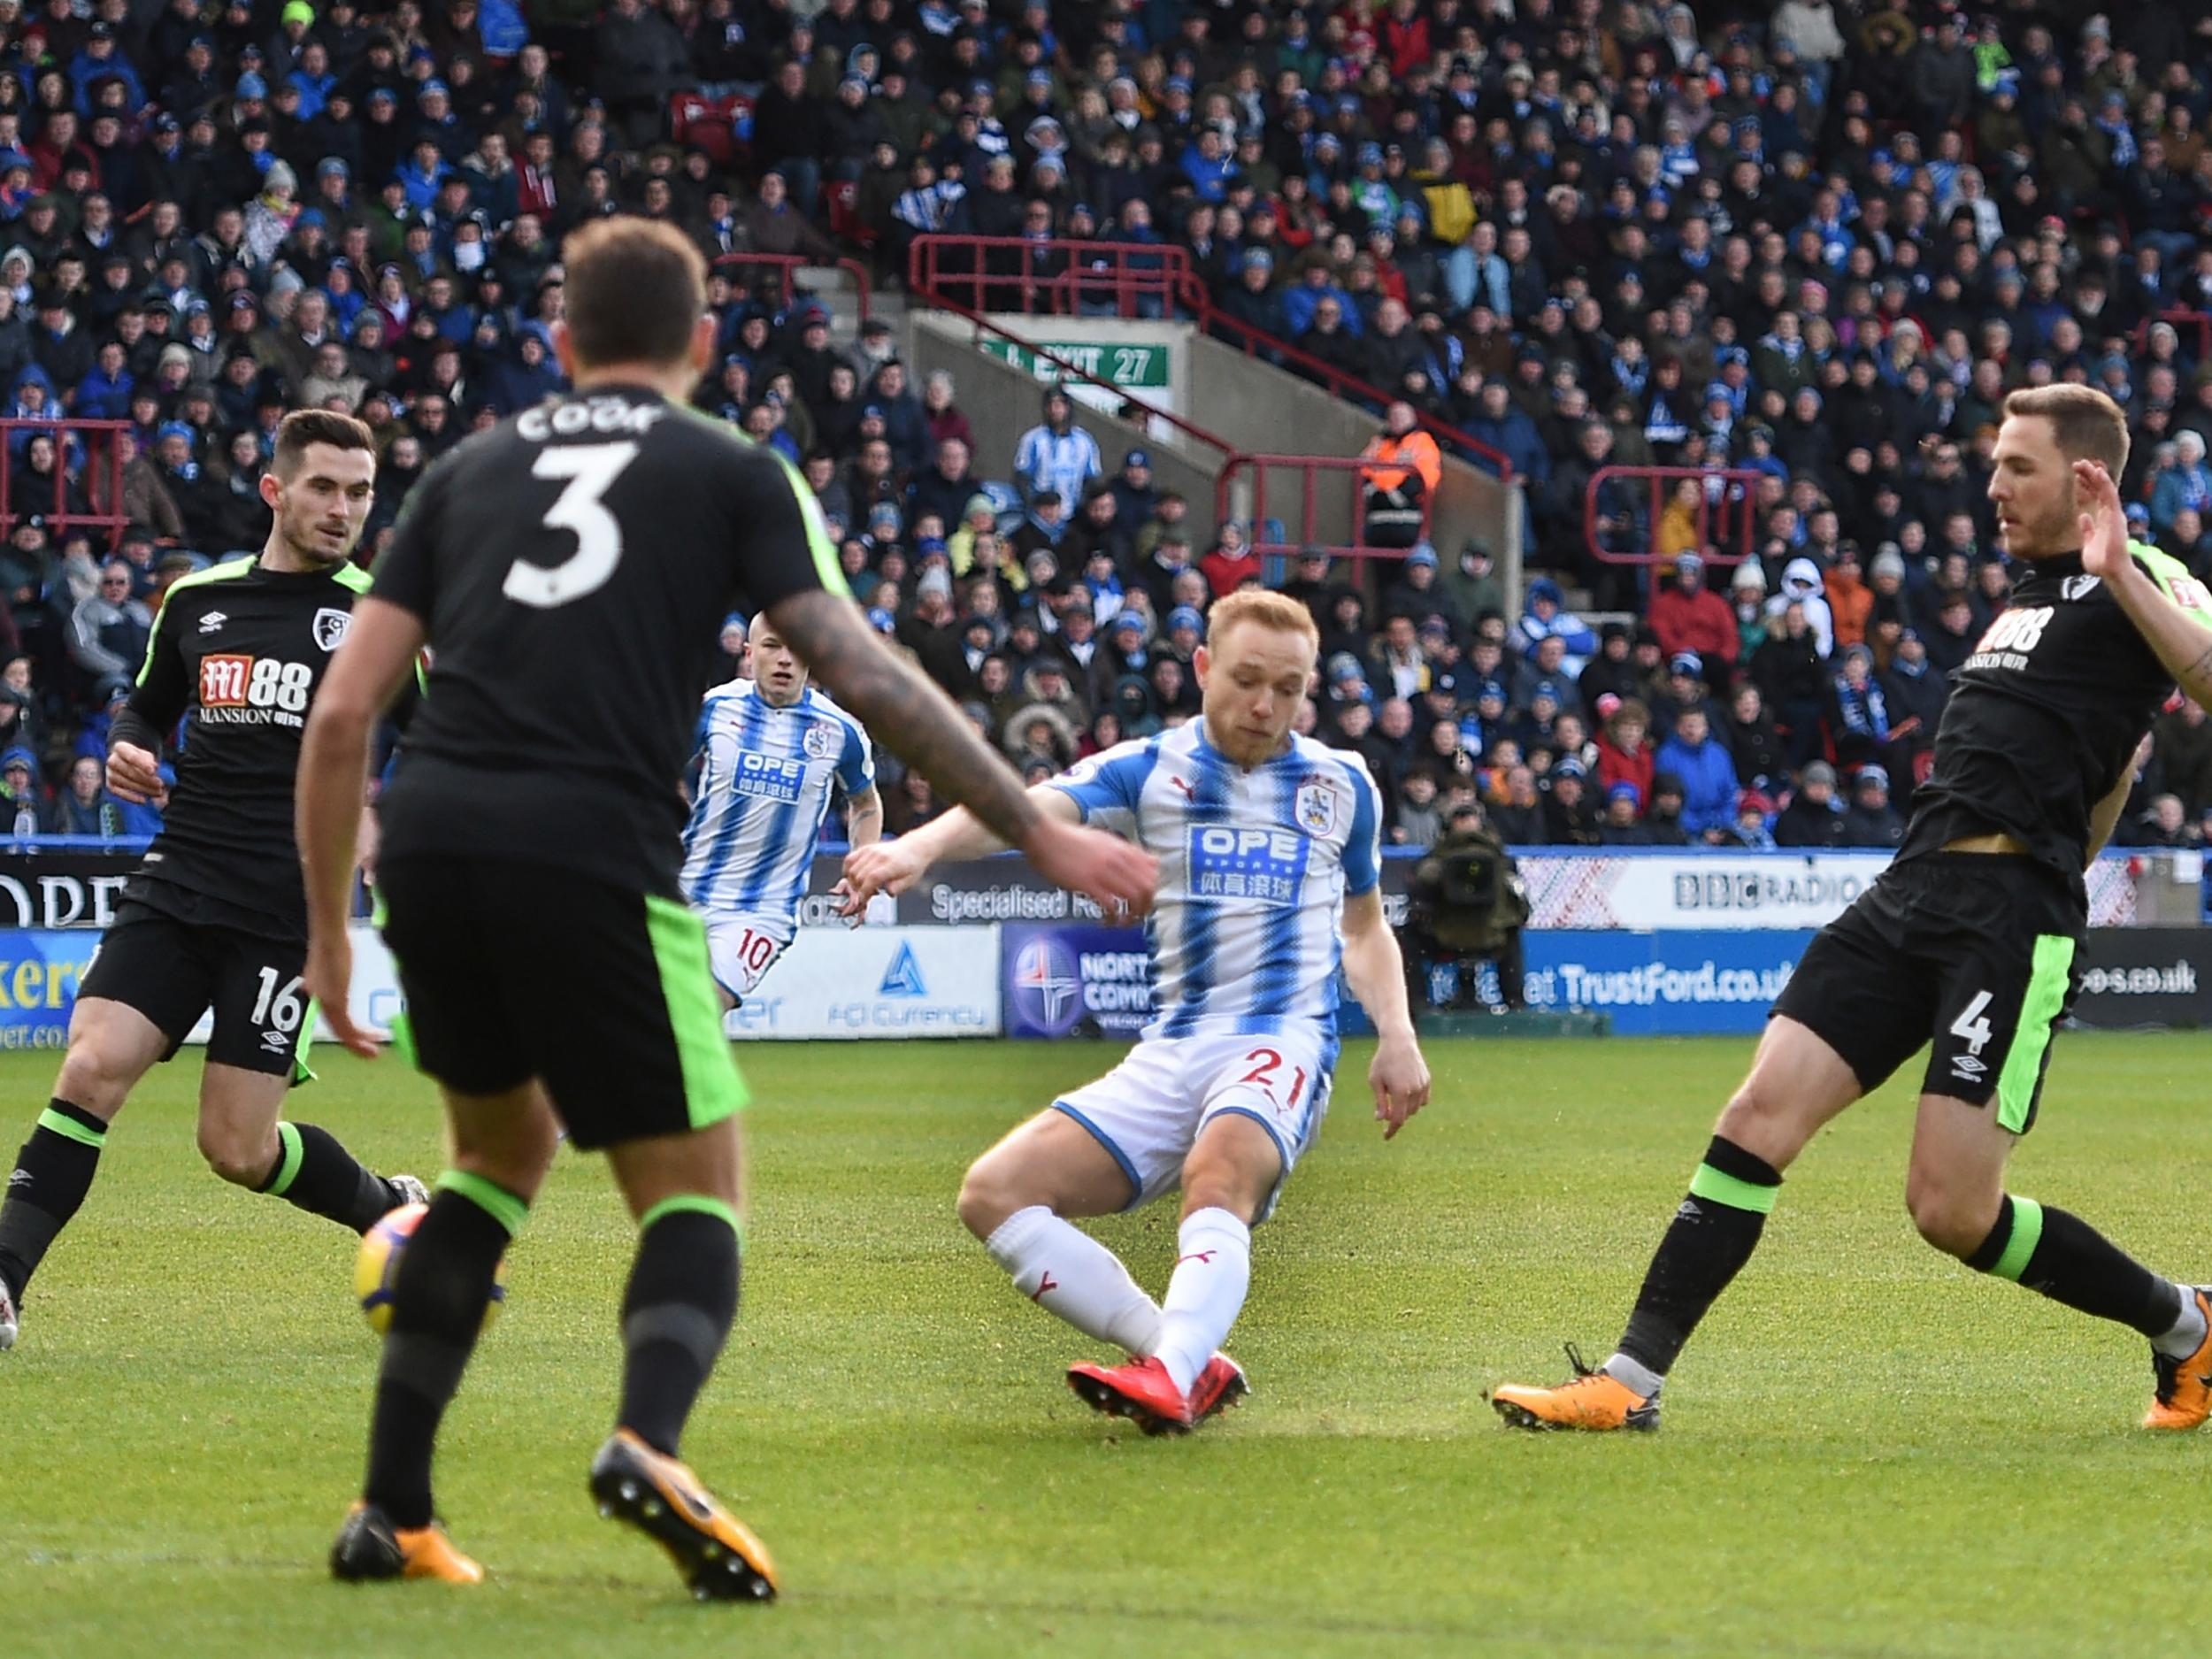 Huddersfield Town vs Bournemouth - as it happened: Steve Mounie double gives hosts win